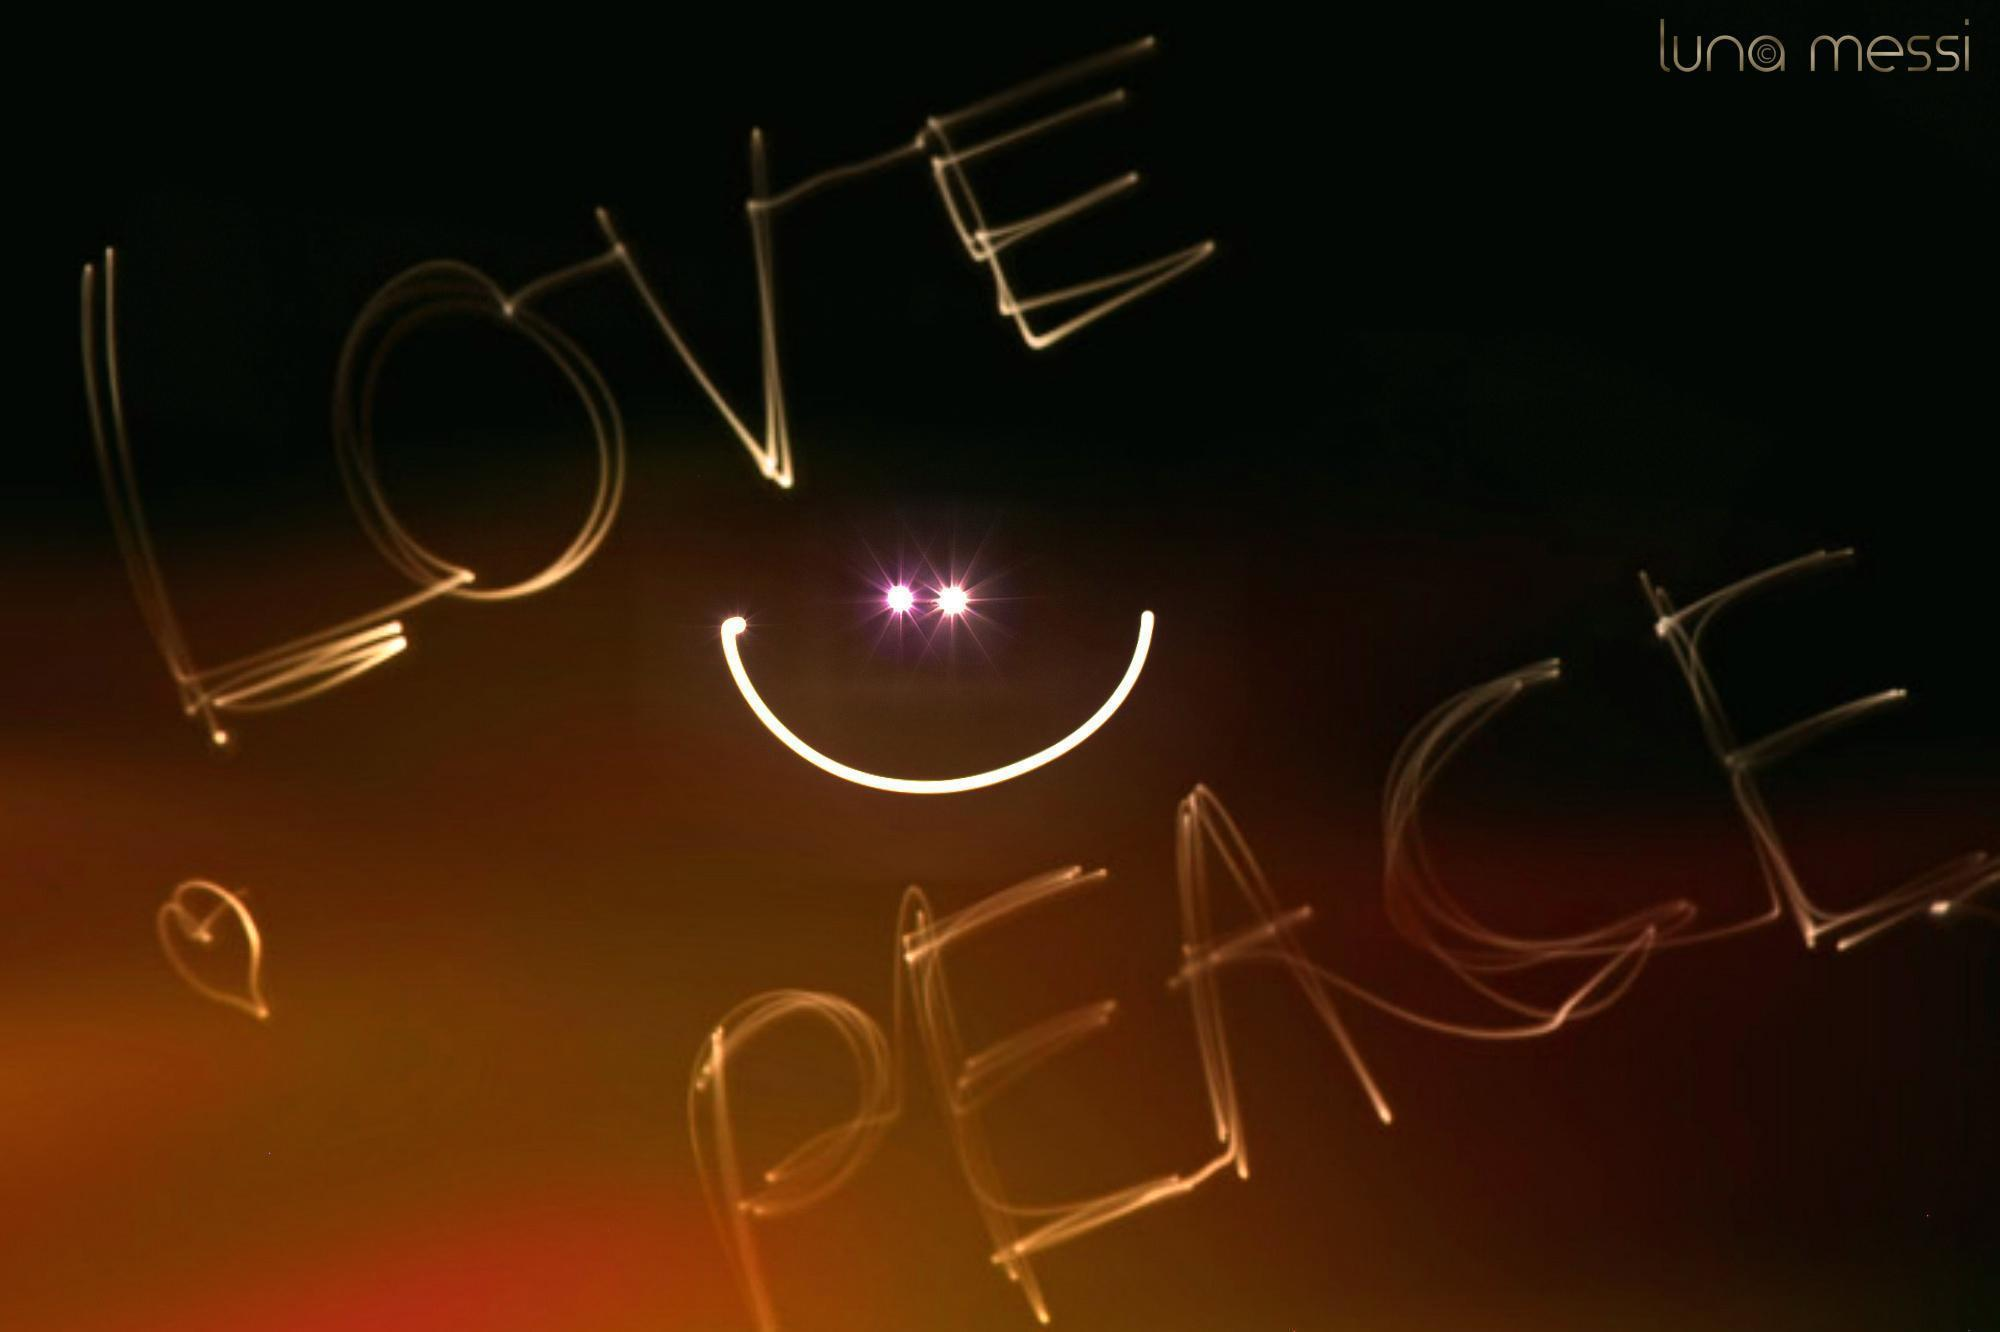 best love and peace wallpaper - photo #48